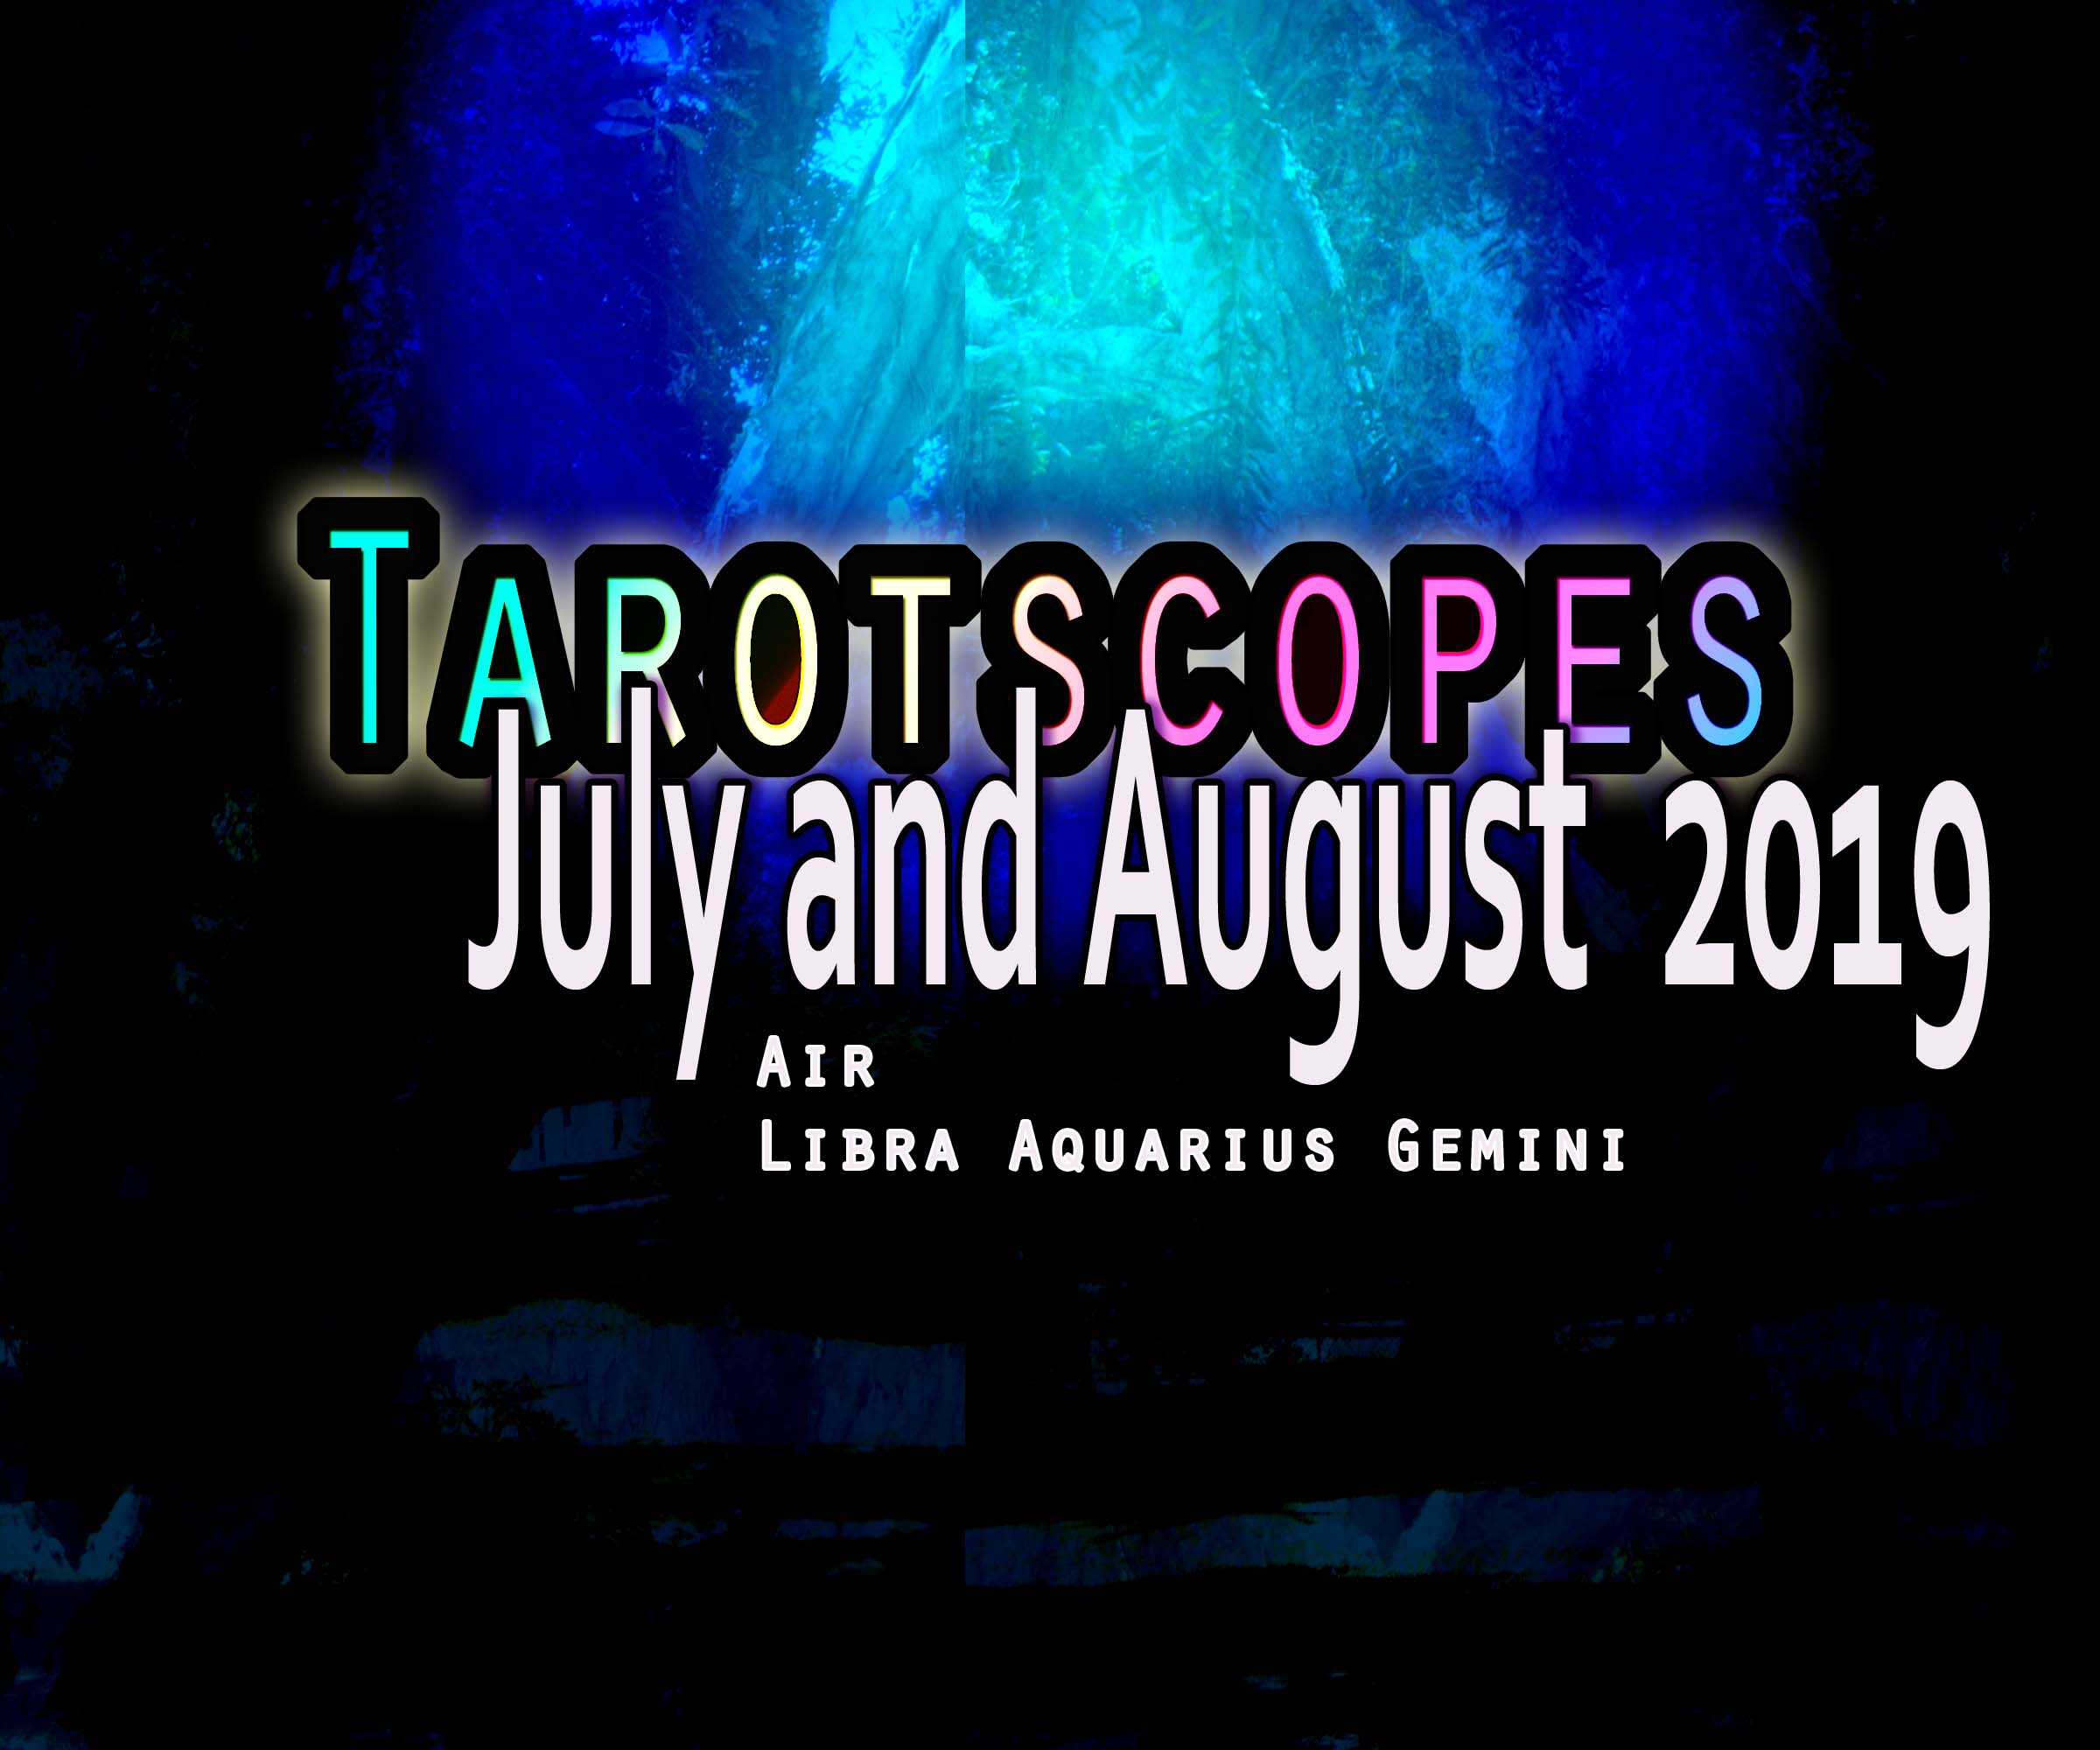 Tarotscopes July and August 2019 Leenna Naidoo